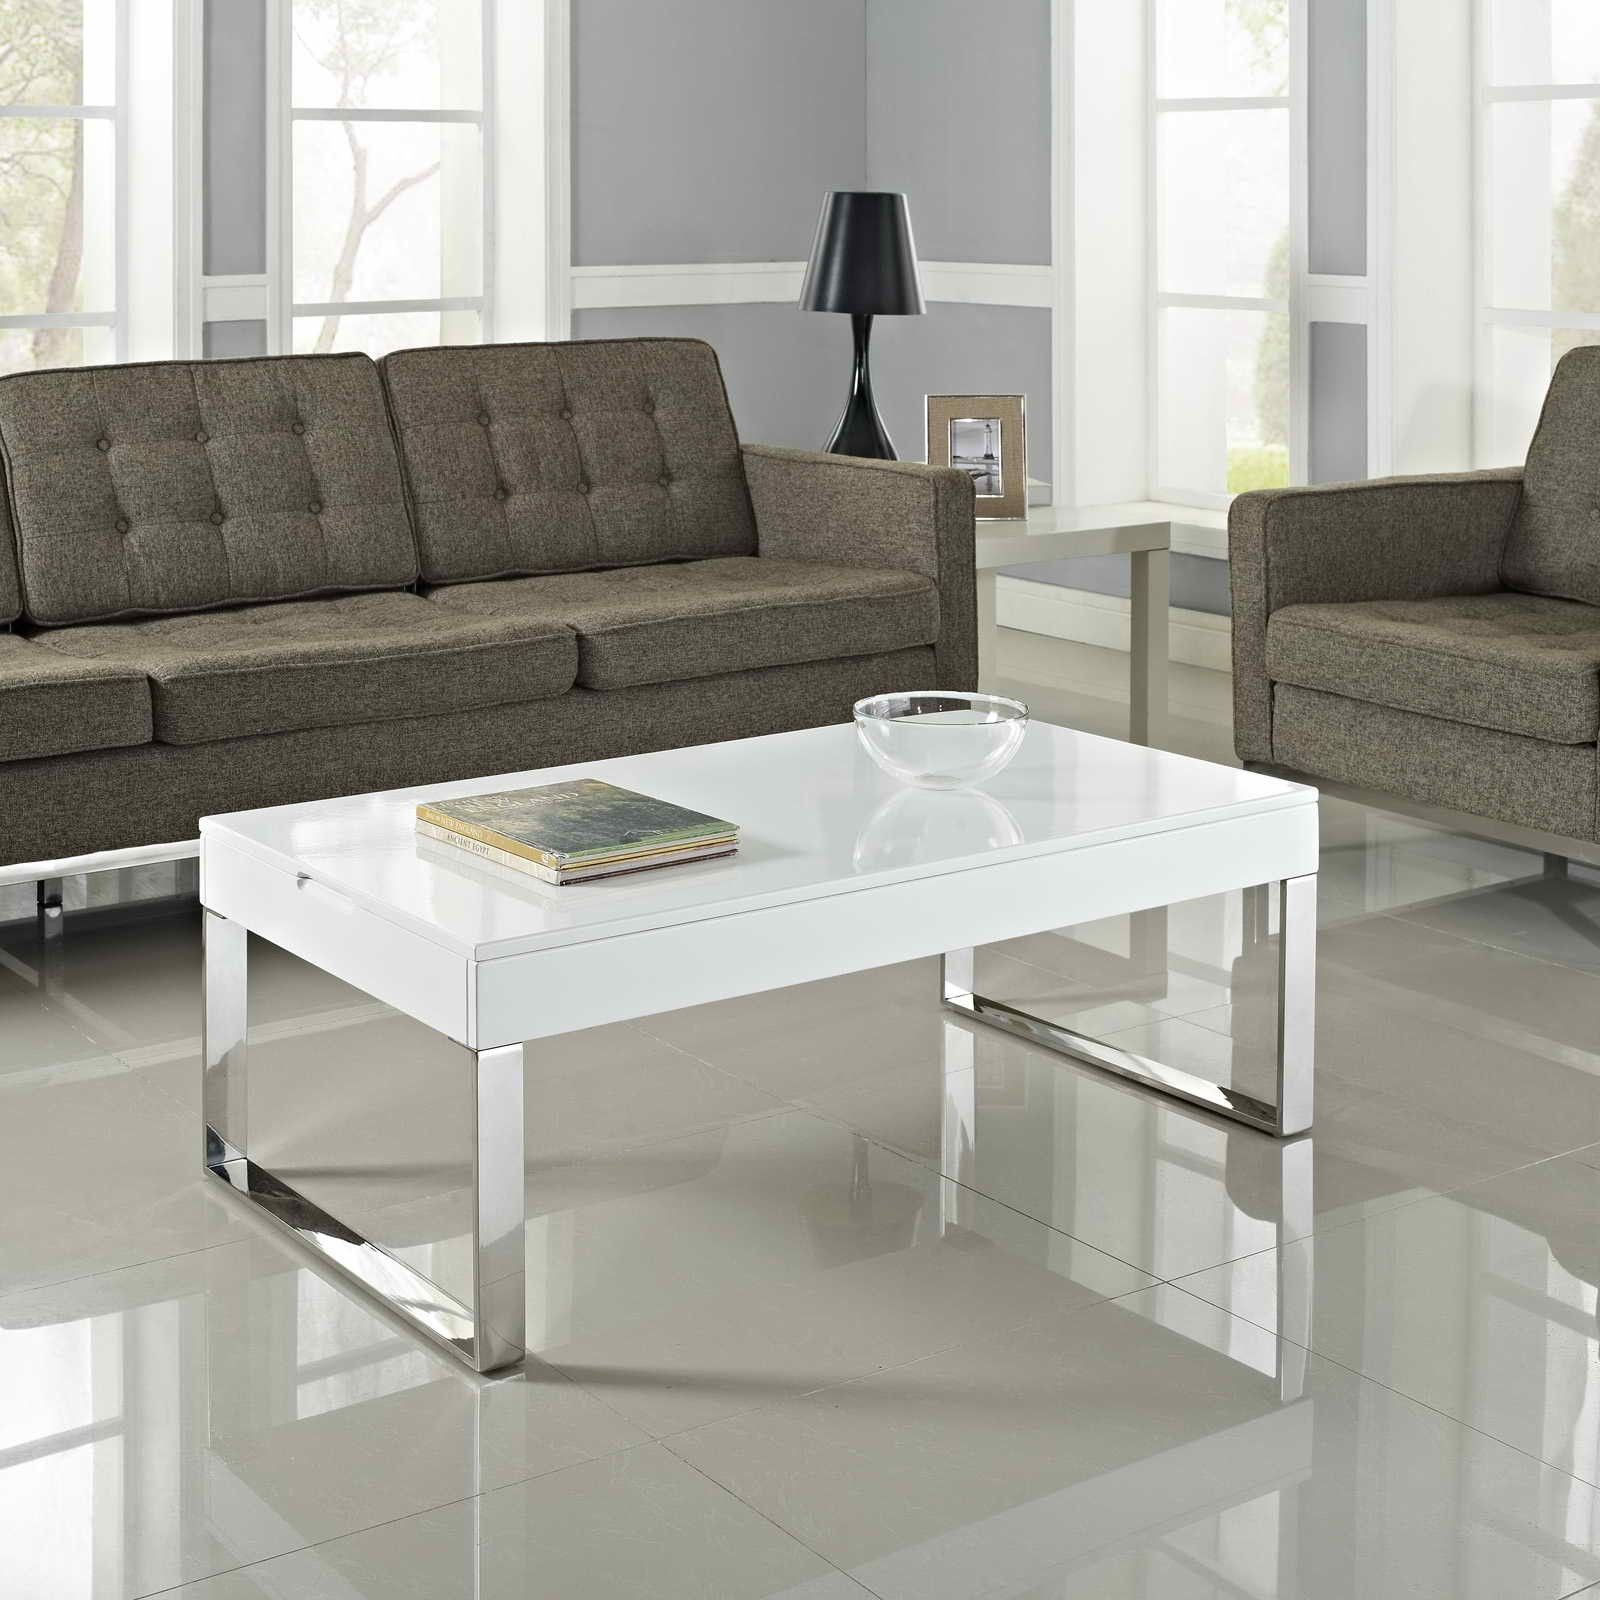 Decorating The House With White Coffee Tables Furniture